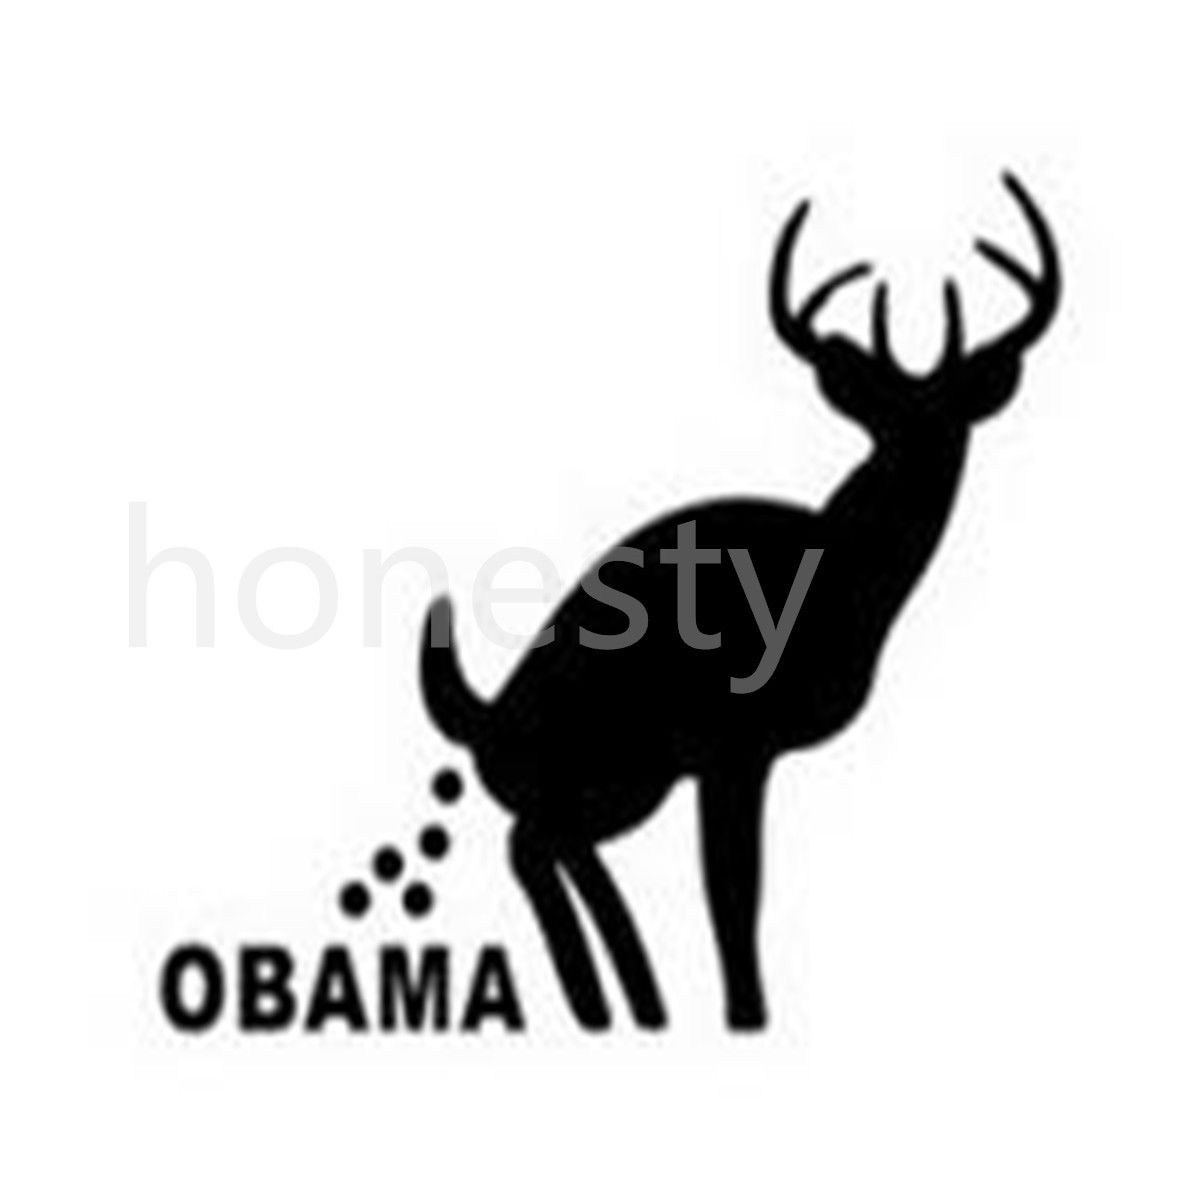 1200x1200 Car Sticker Anti Obama Want My Change Back Poop Funny Obama Funny